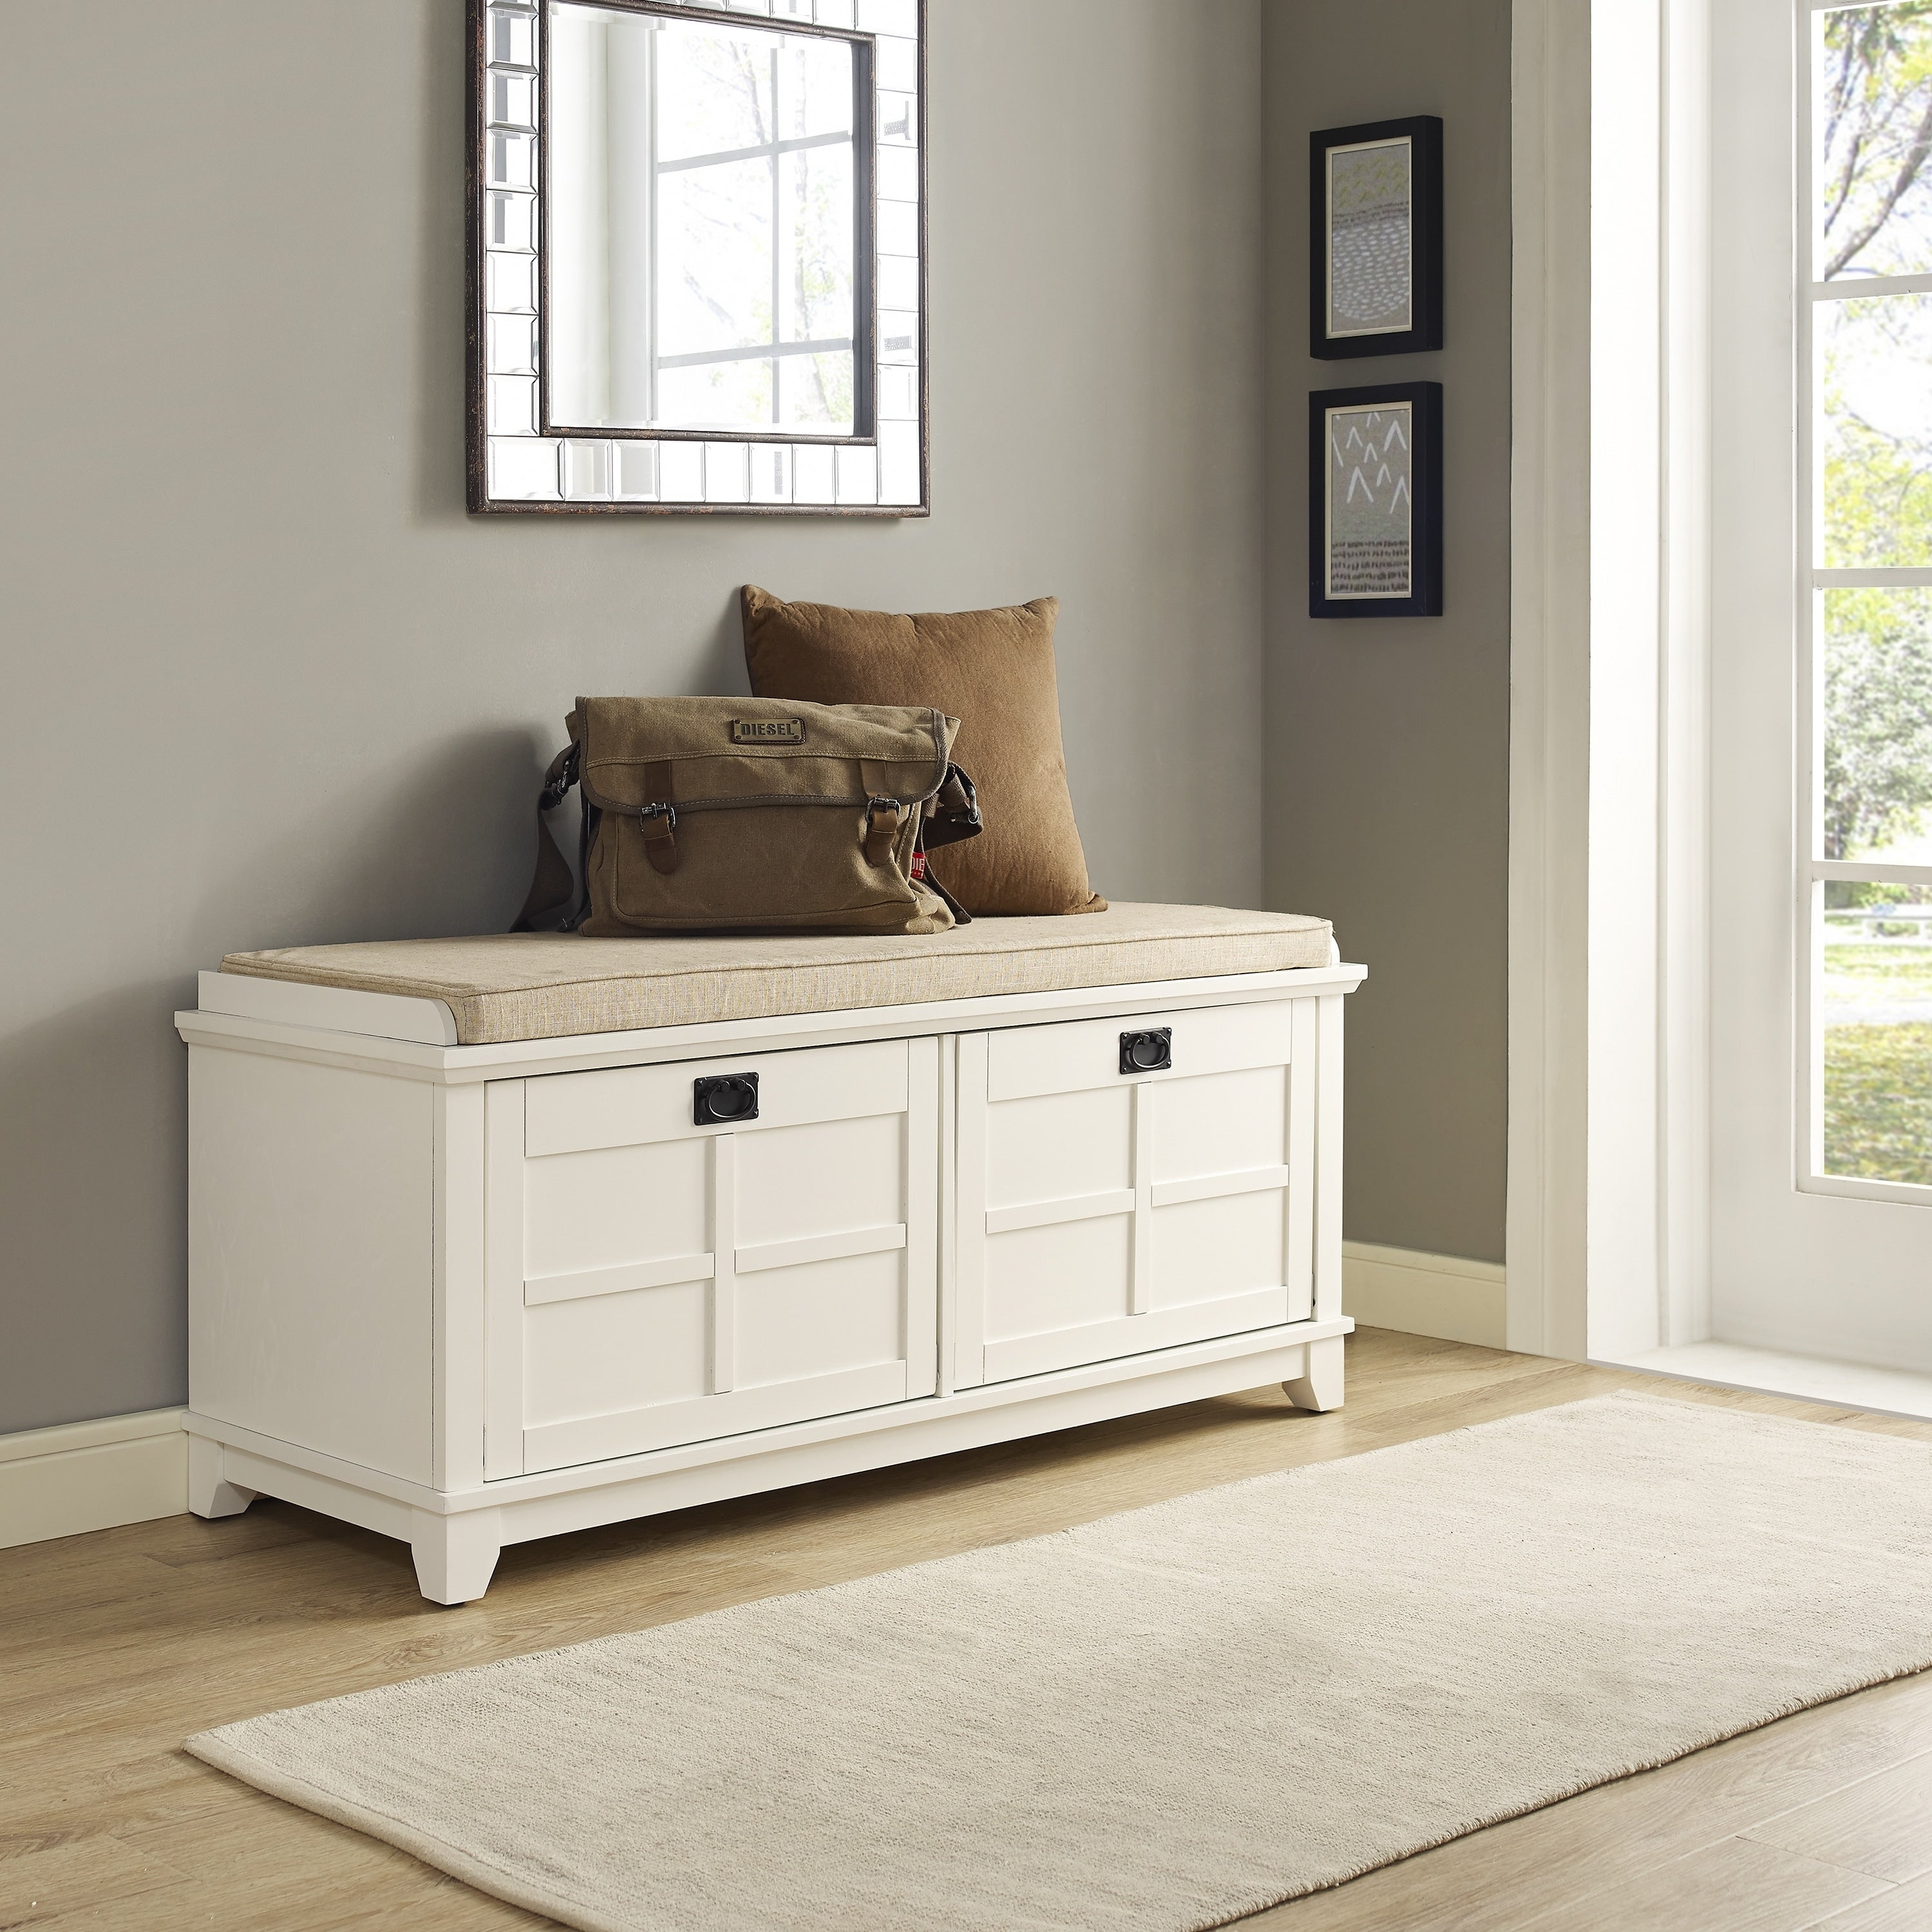 Picture of: Adler White Entryway Bench Overstock 15964158